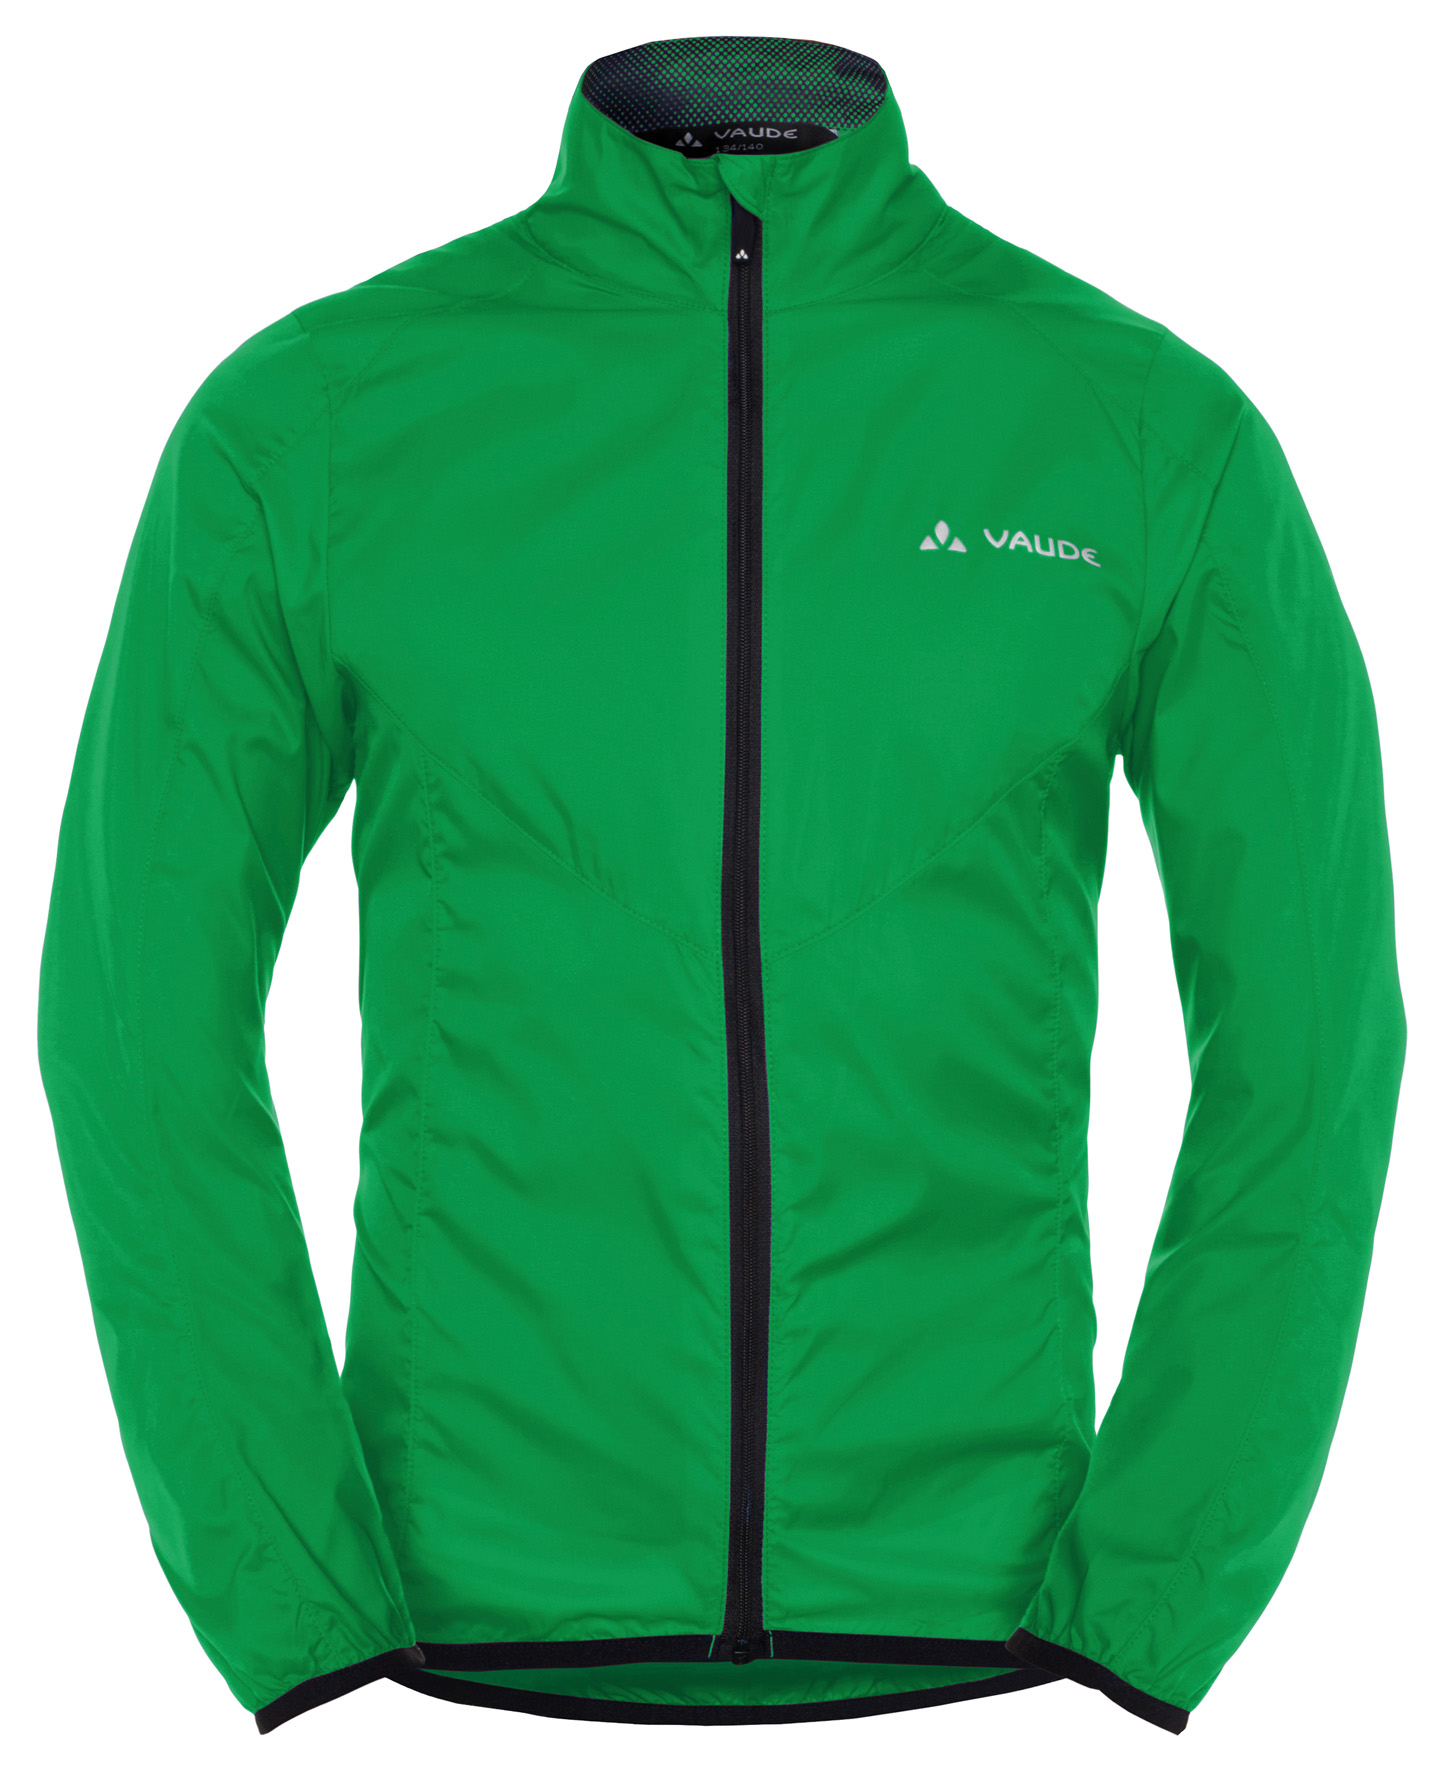 VAUDE Kids Elmo Jacket II apple green Größe 122/128 - schneider-sports